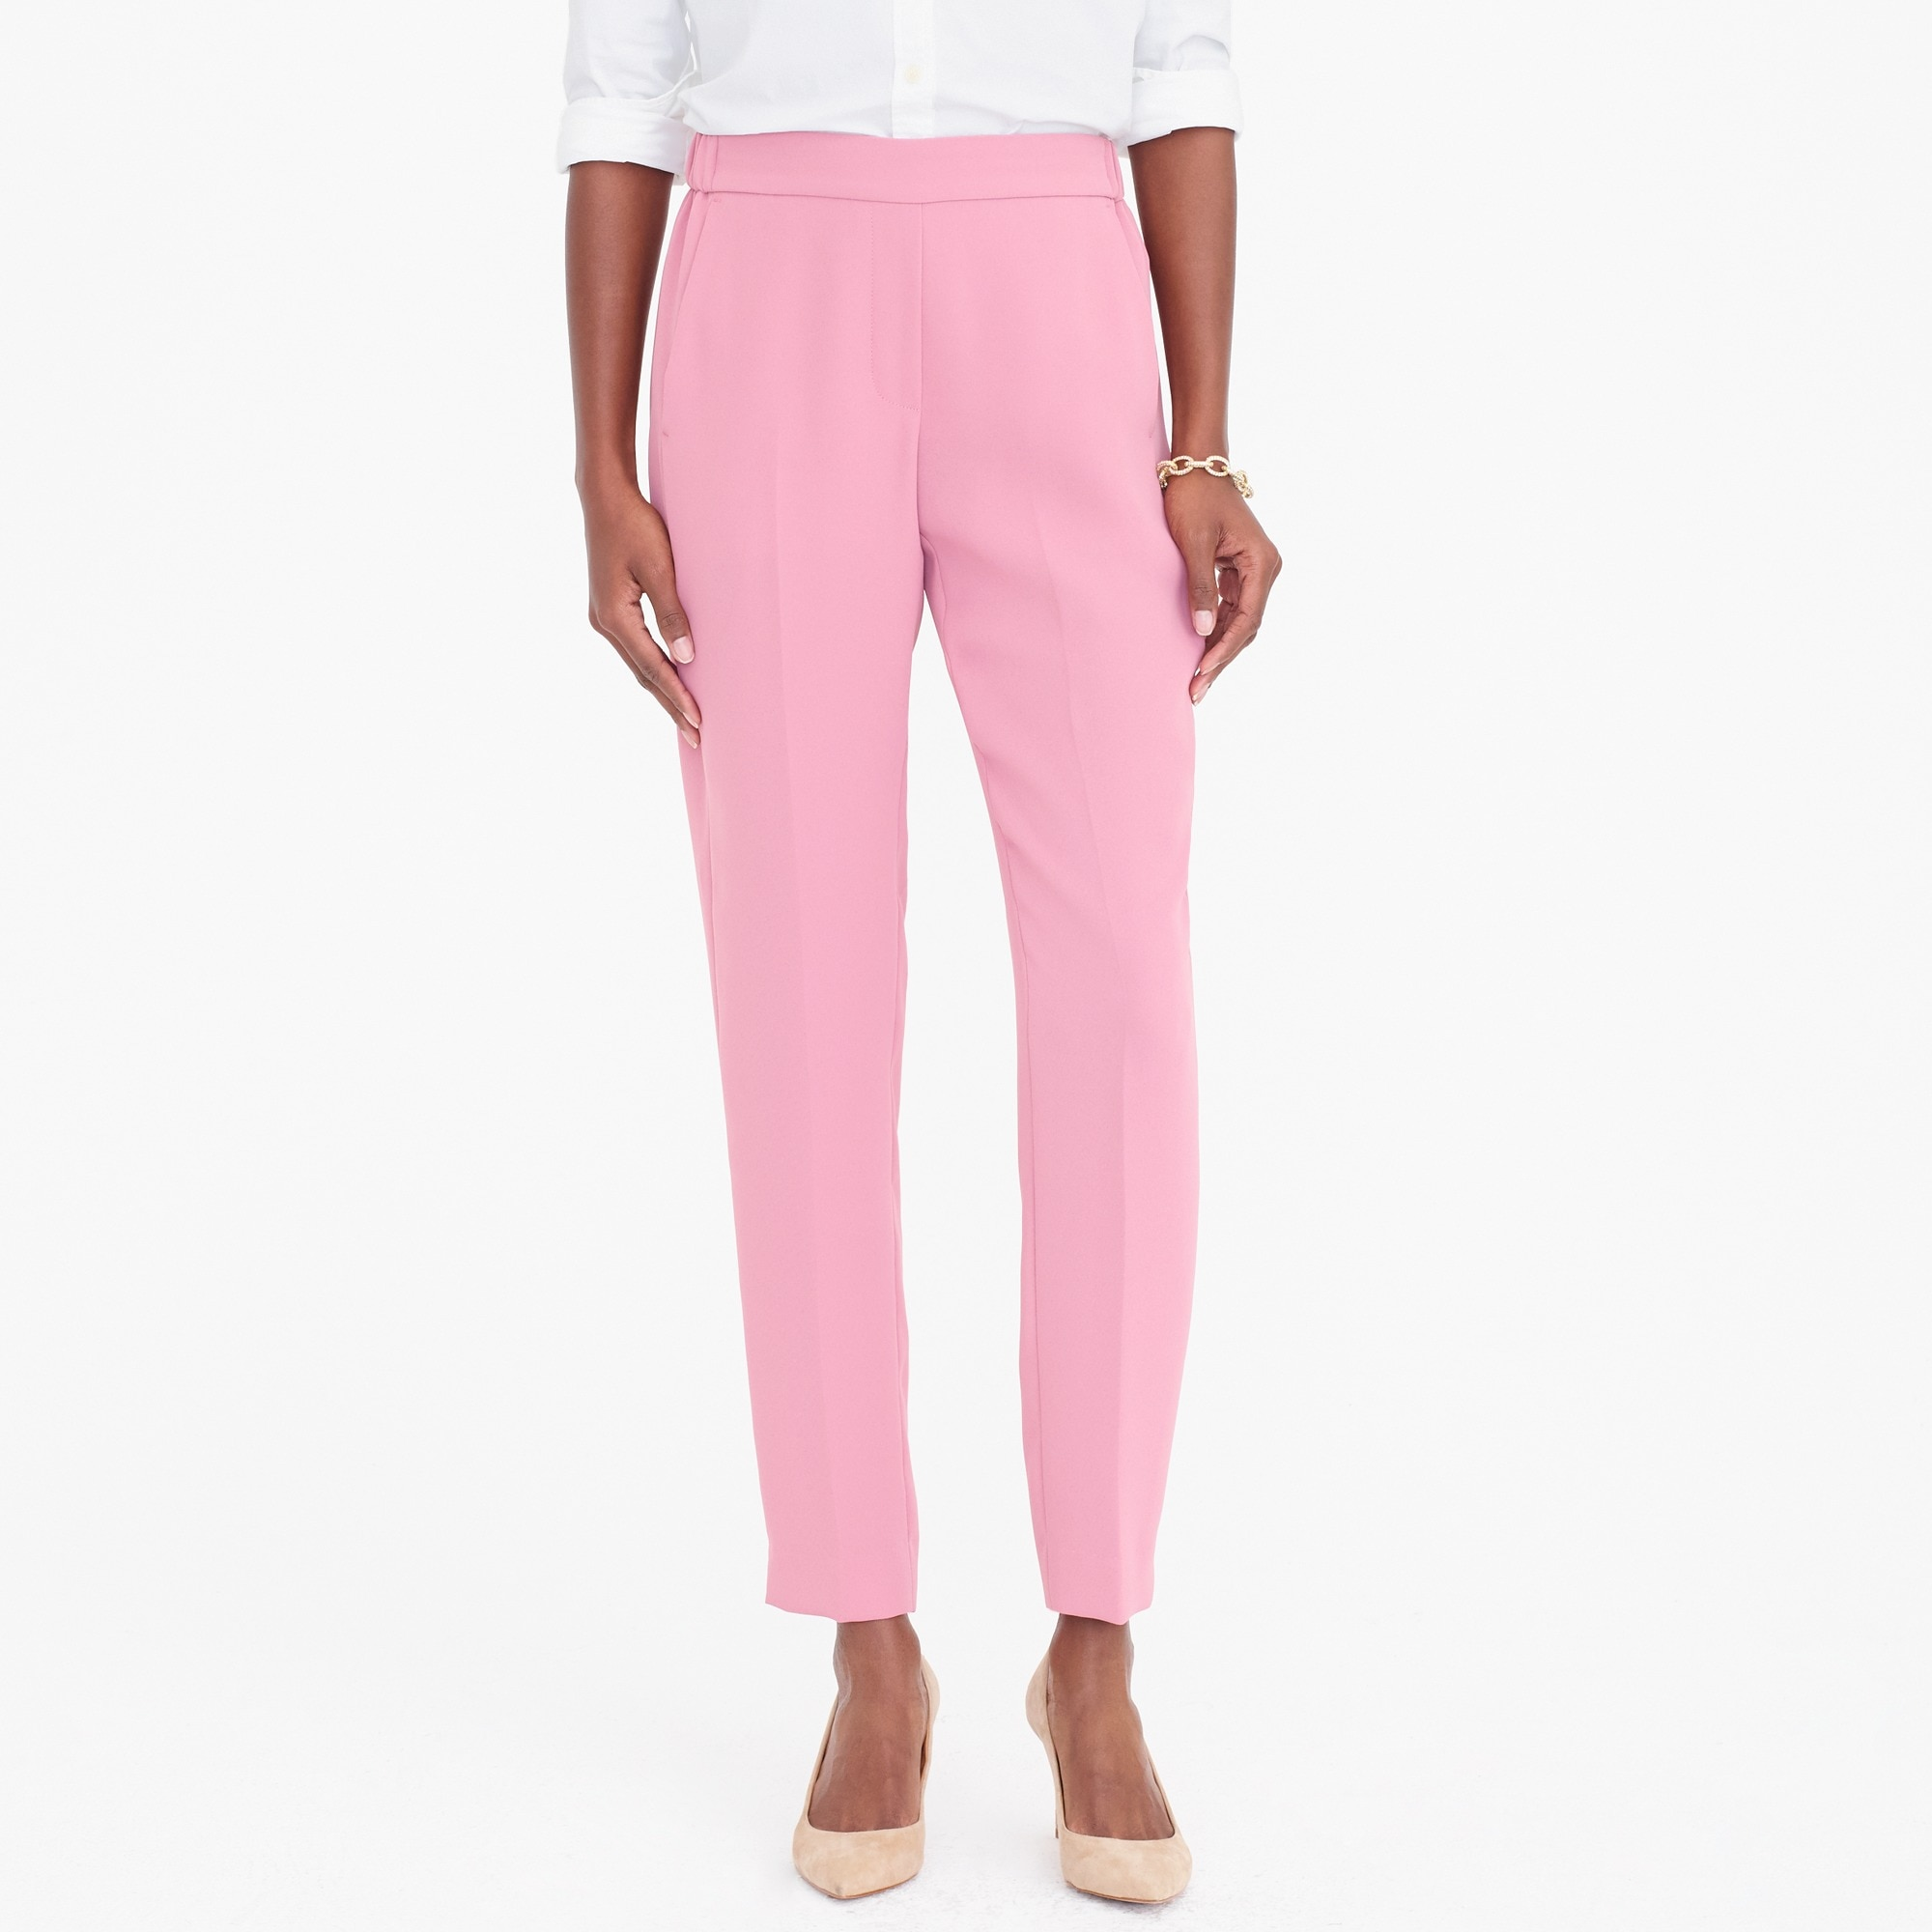 Image 1 for Drapey pull-on pant